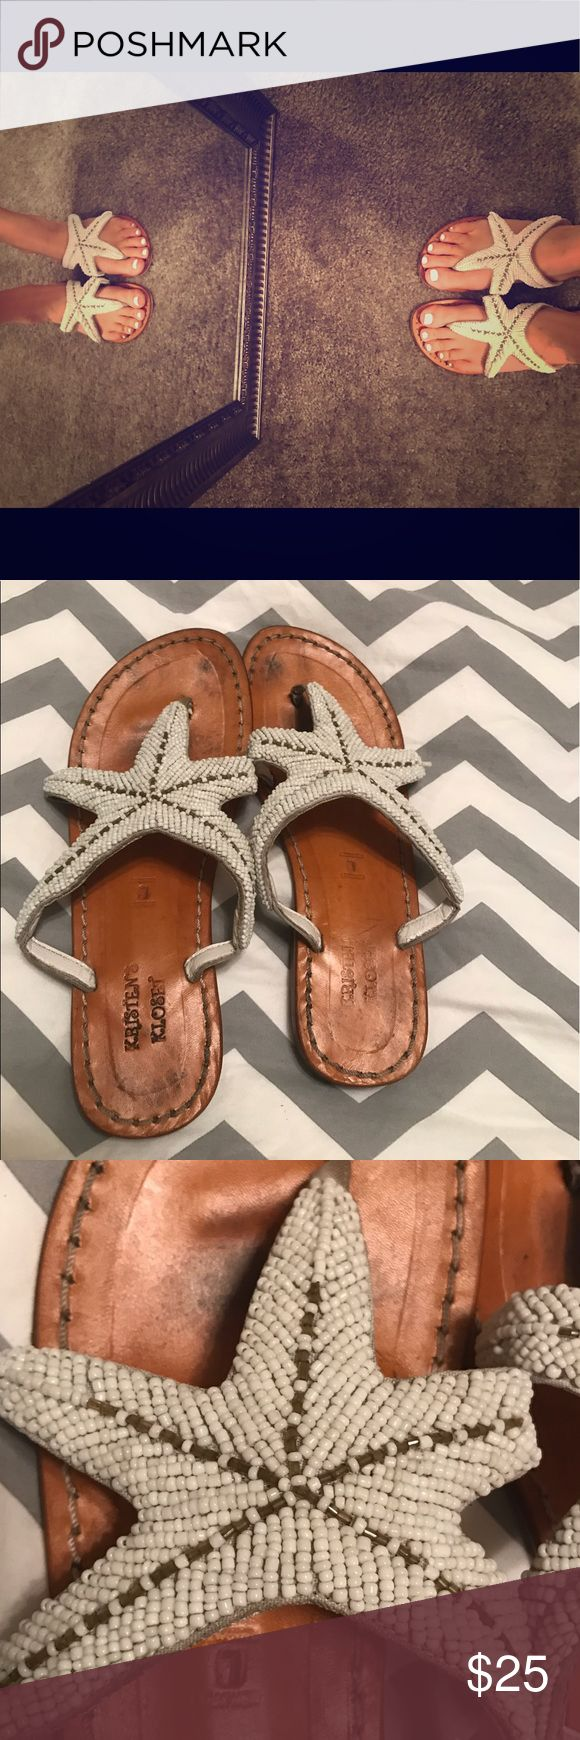 Summer starfish sandals  Handmade in St. Augustine, FL at a boutique shop. A little worn, but the beading is still in great condition. Sandal has a little heel but very small. Very comfy and great for summer outdoor outfits Shoes Sandals